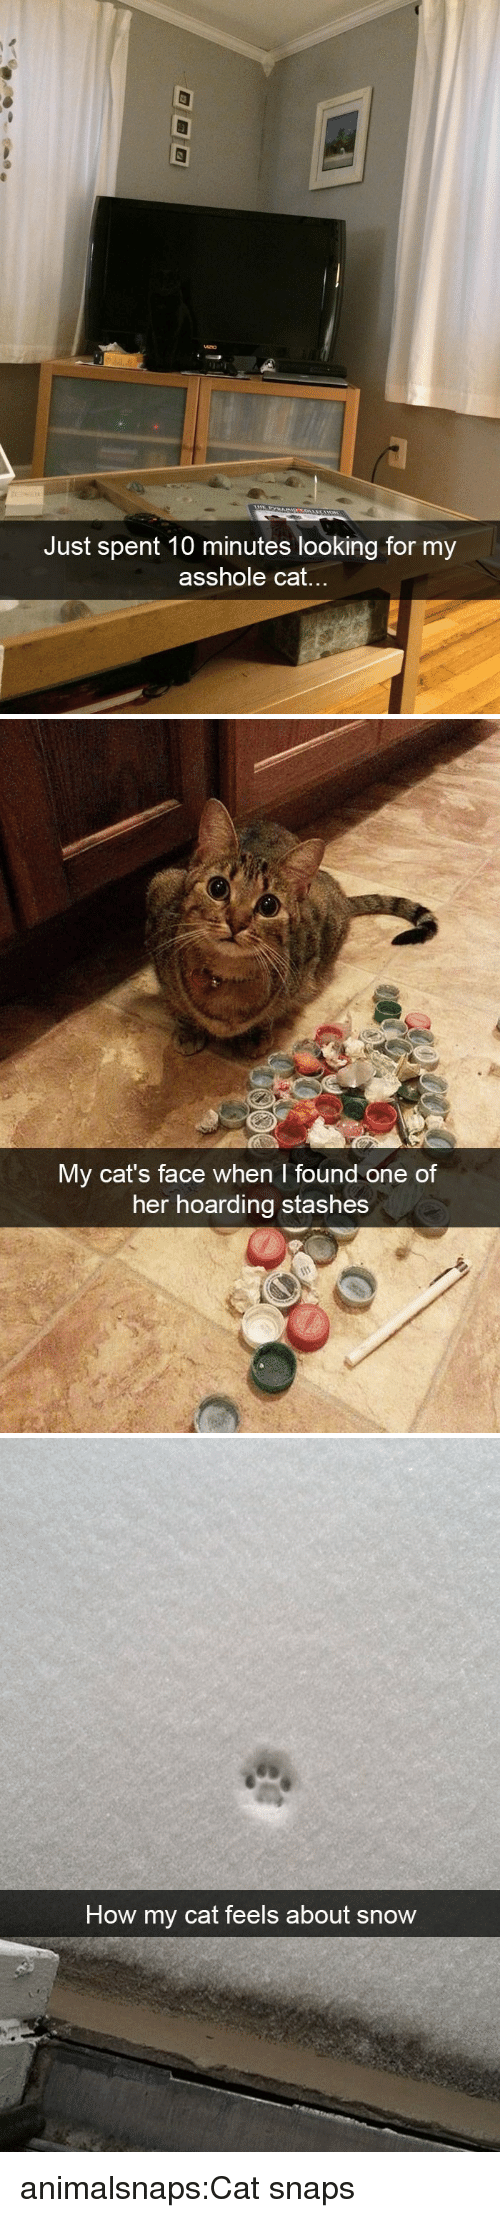 Cats, Target, and Tumblr: Just spent 10 minutes looking for my  asshole cat...   My cat's face when I found one of  her hoarding stashes   How my cat feels about snow animalsnaps:Cat snaps